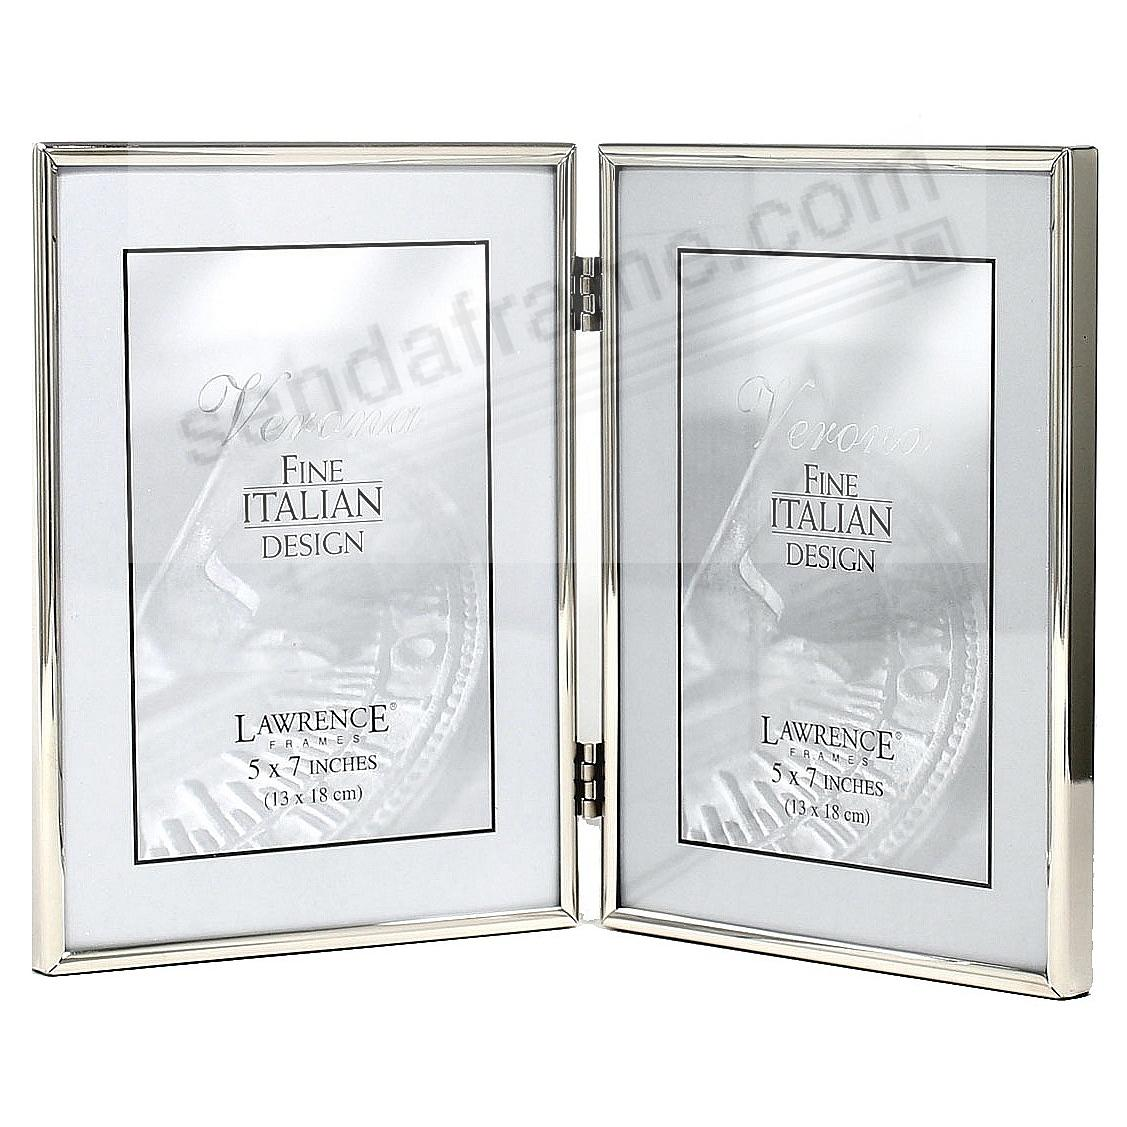 Polished SIMPLY SILVER double hinged 5x7 frame by Lawrence®